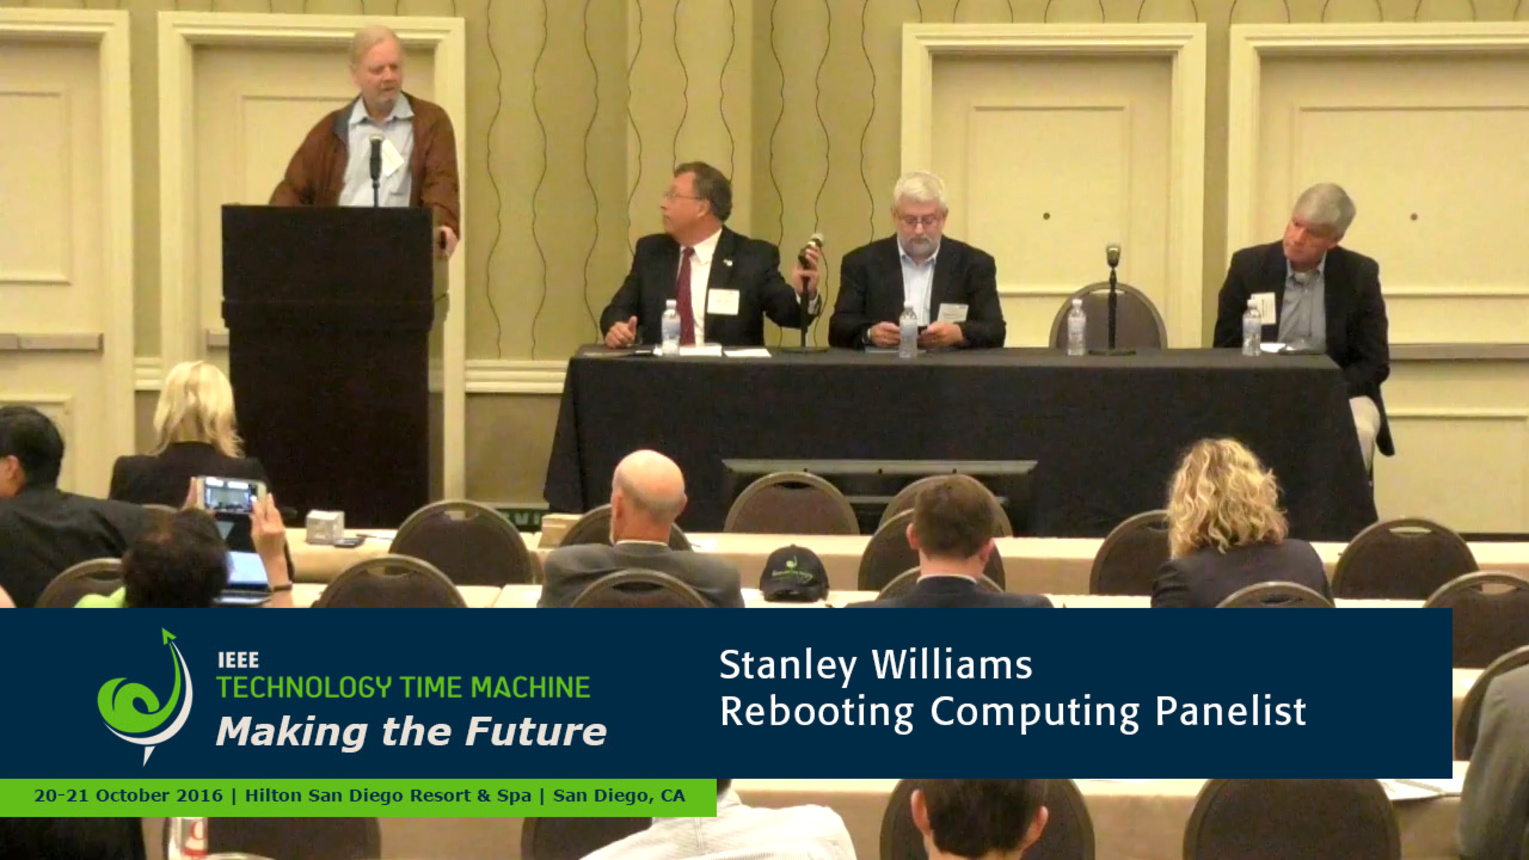 Rebooting Computing Panel - Stan Williams: 2016 Technology Time Machine